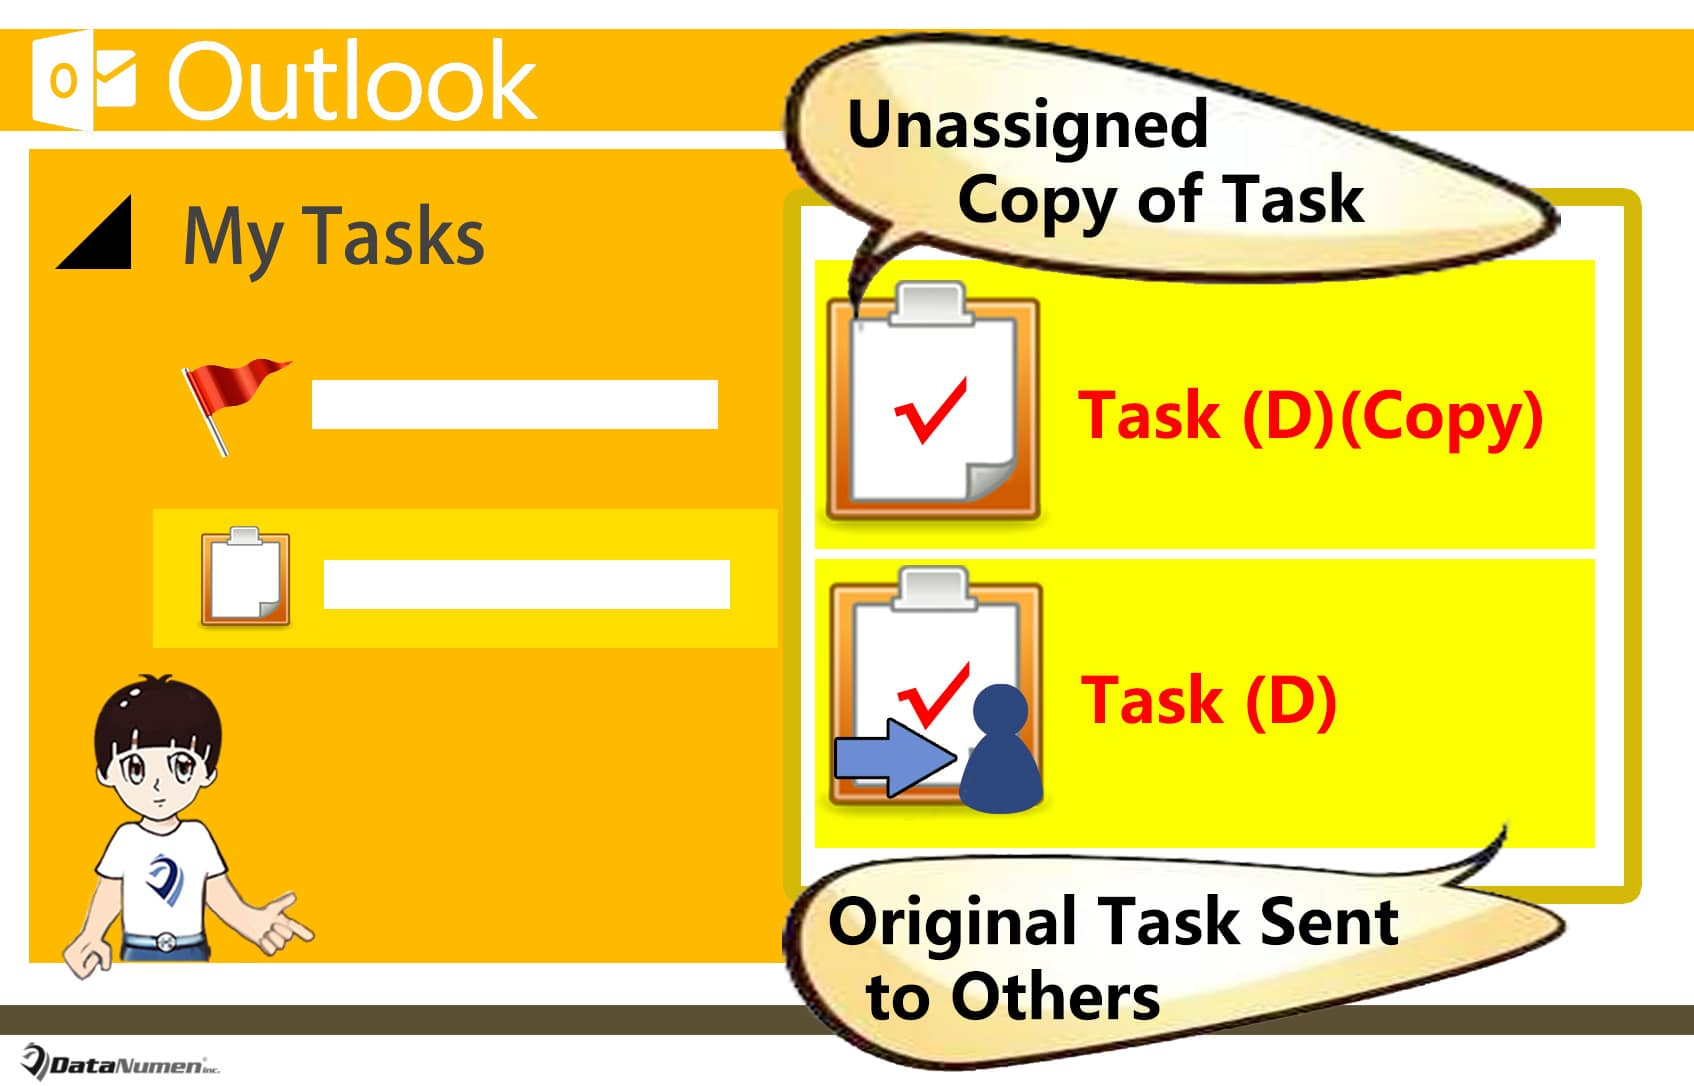 Auto Create Unassigned Copy of a Task when Sending It to Others in Outlook